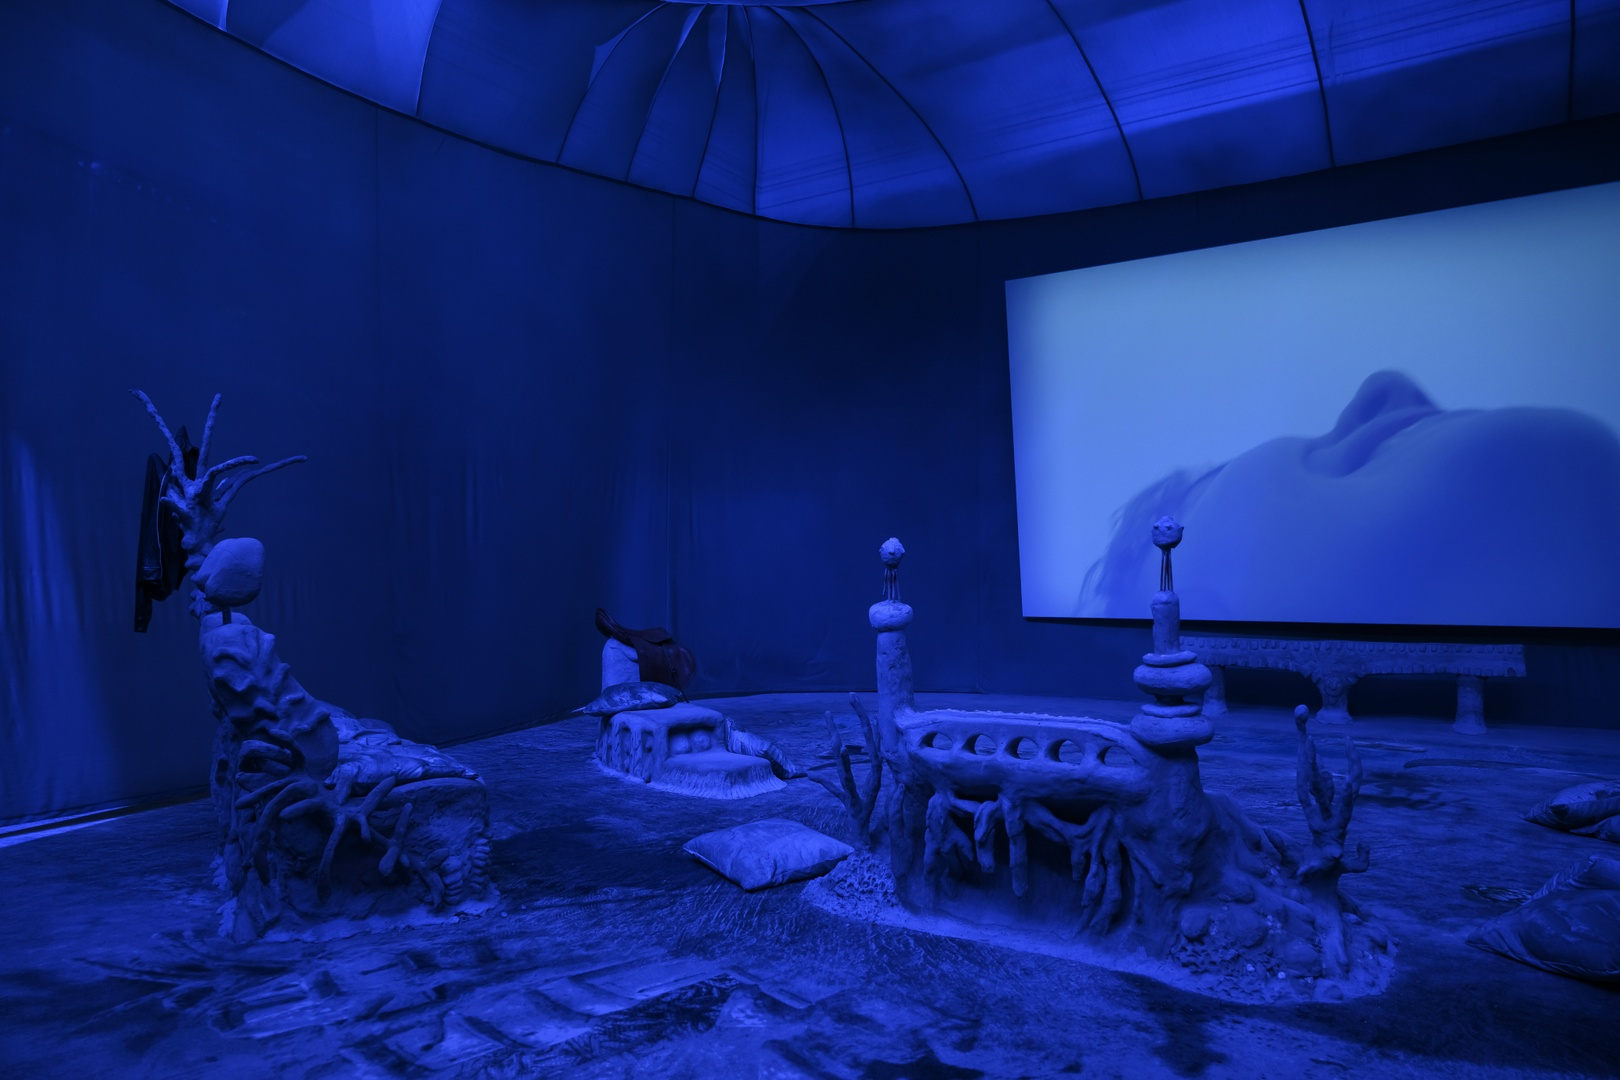 Laure Prouvost_French Pavillion Biennale Venice 2019_ Photography by Cristiano Corte